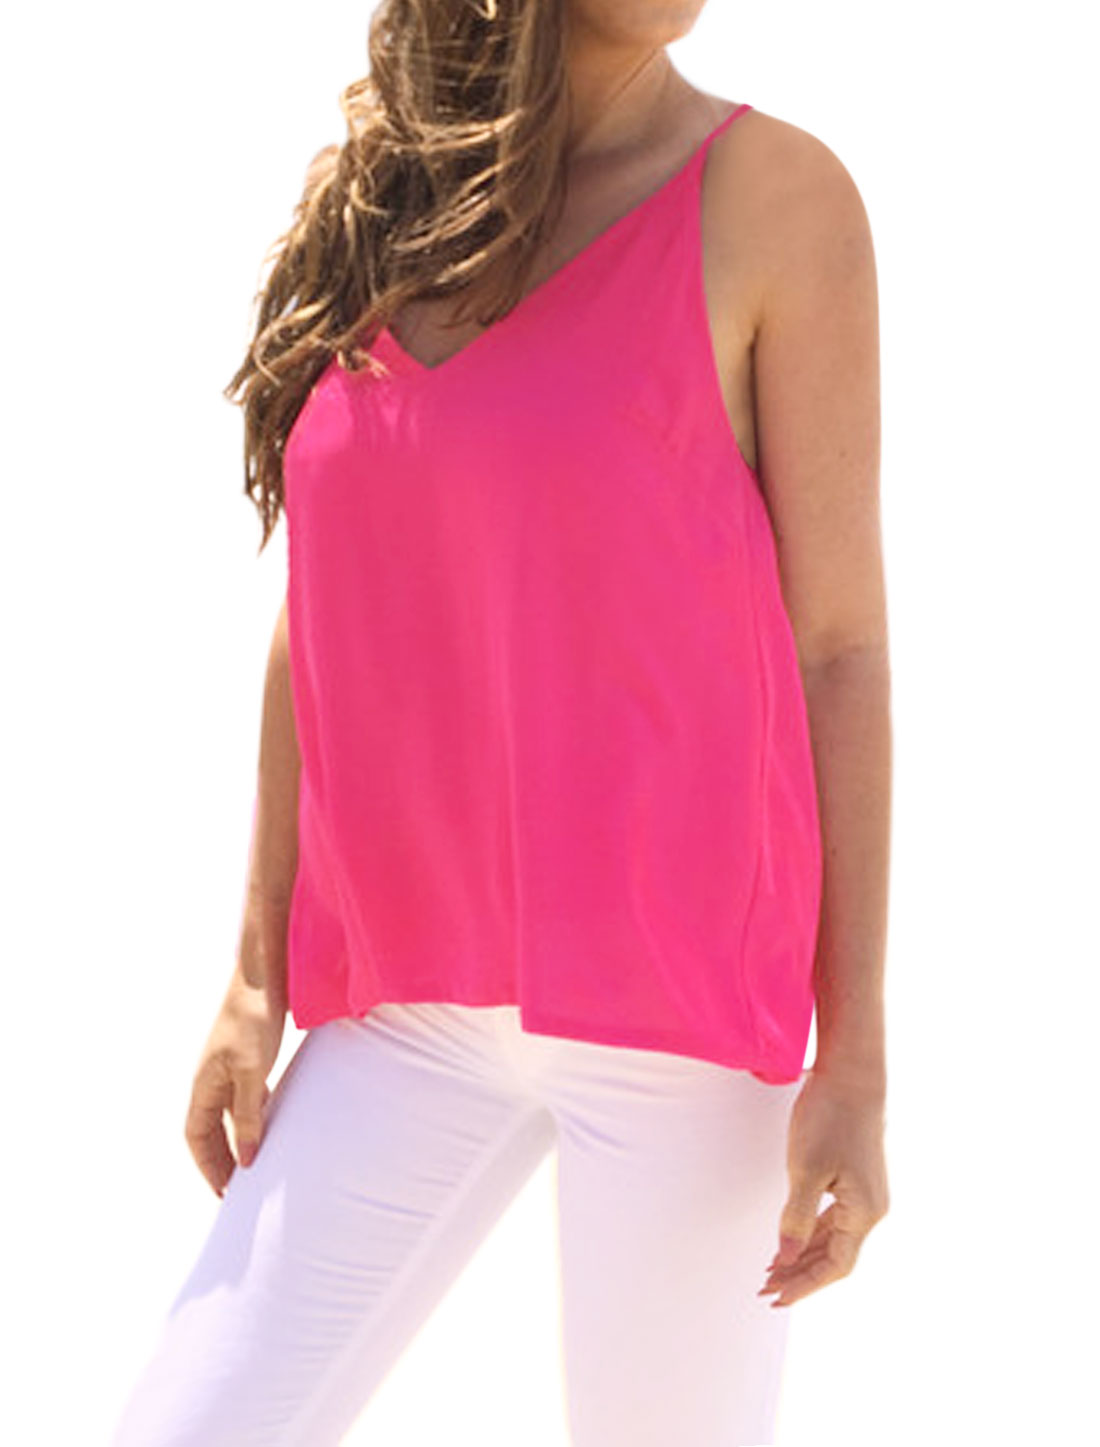 Women Straps Deep V Neck Crisscross Backless Chiffon Cami Top Pink M